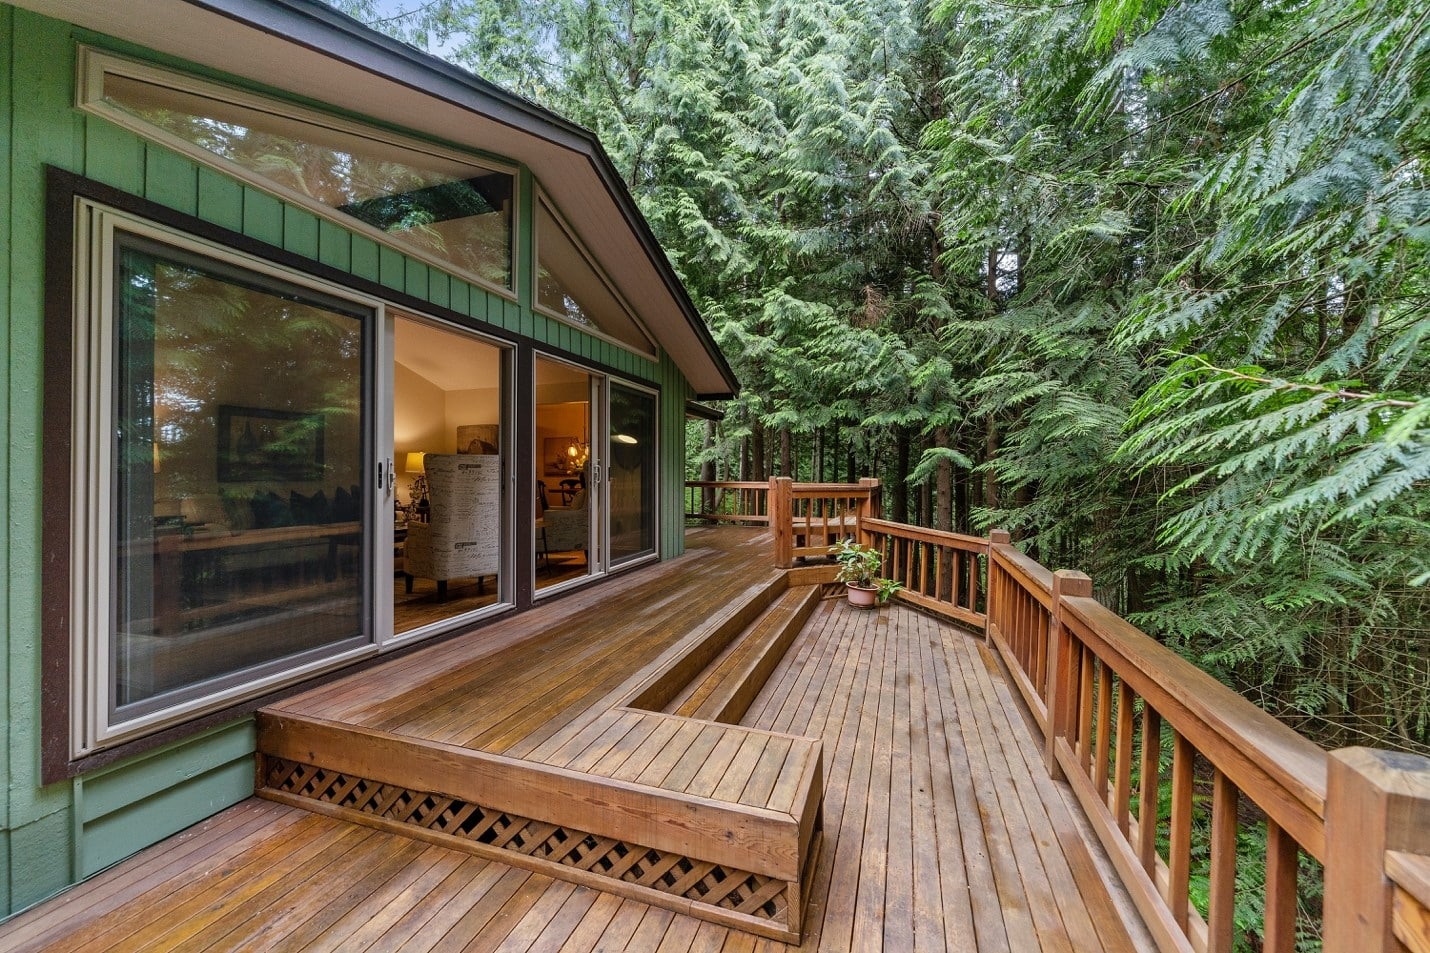 A brown wooden deck surrounded by trees